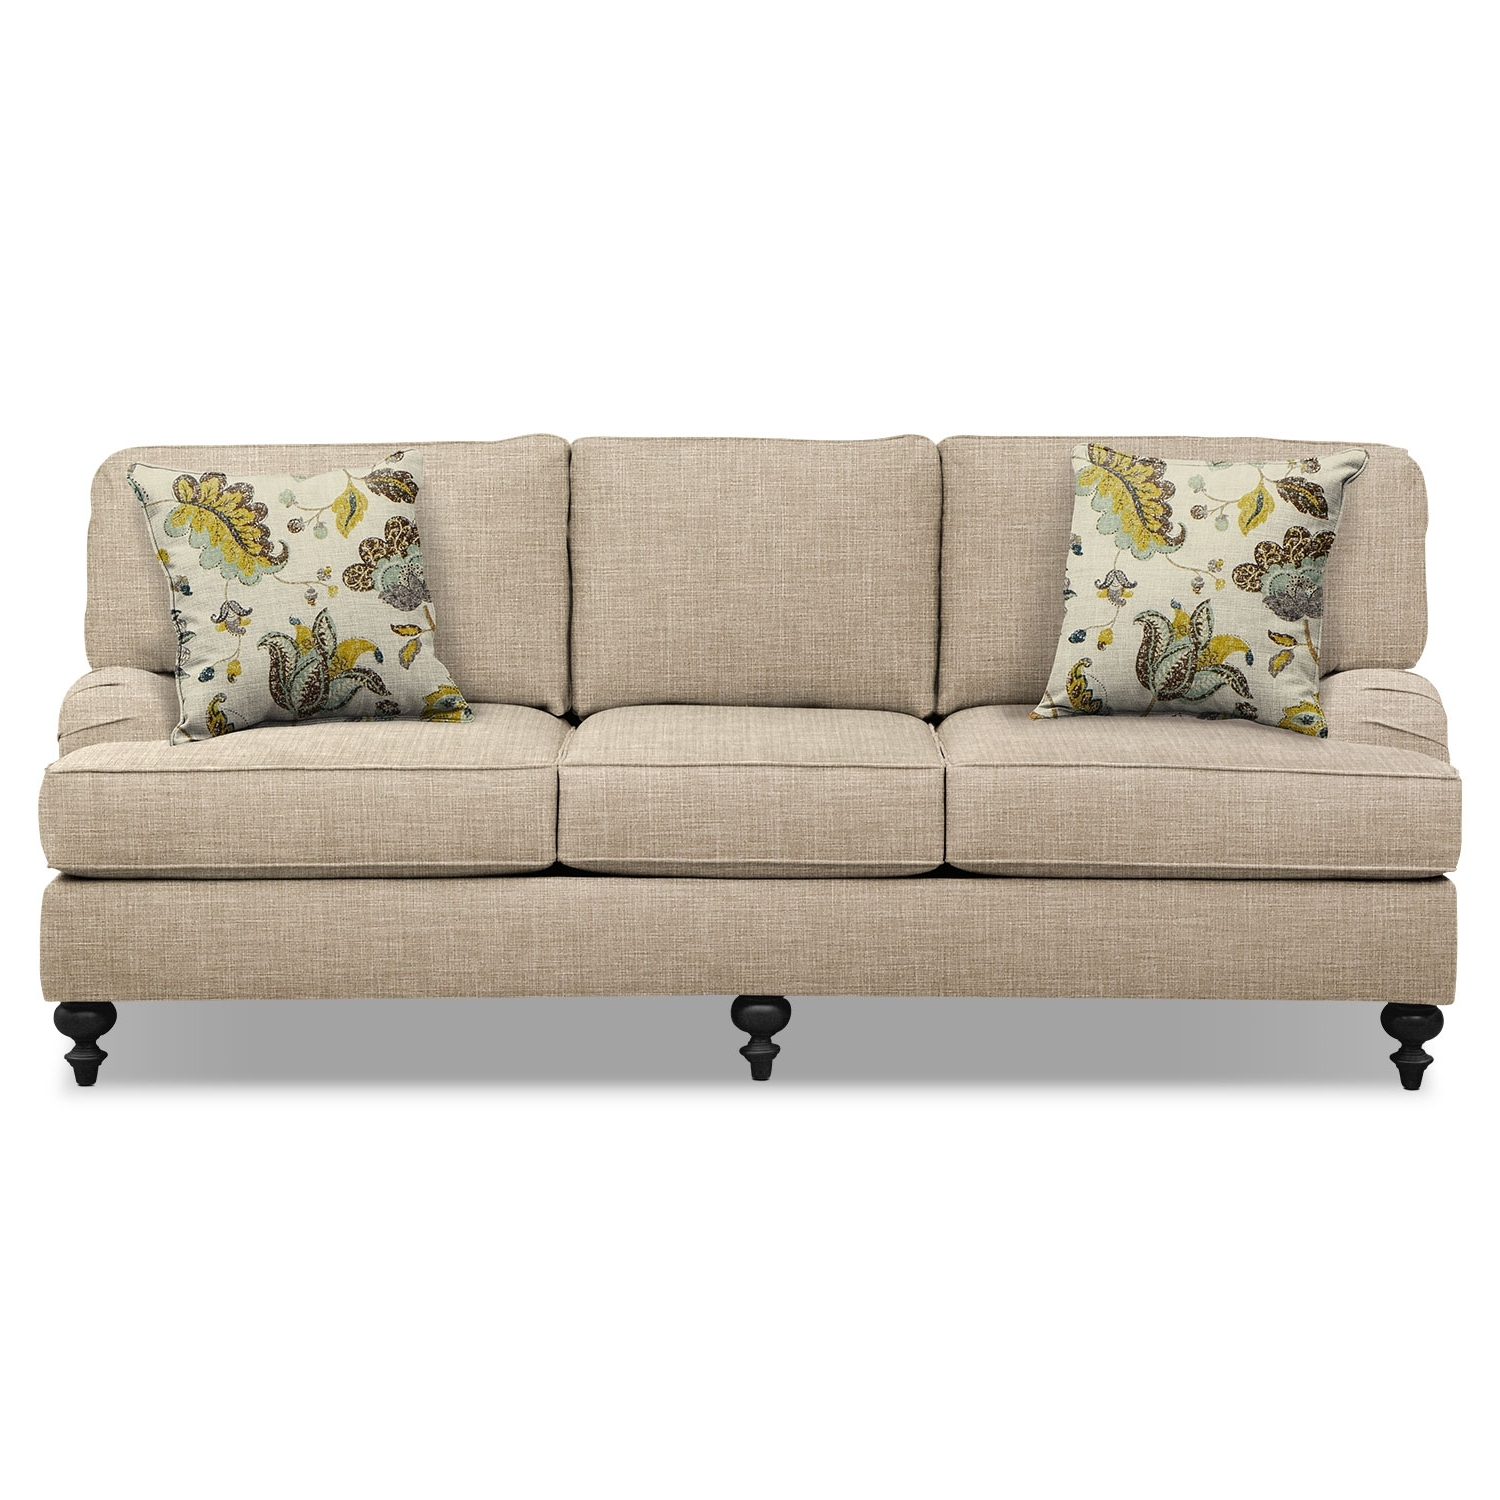 "Avery Taupe 86"" Sofa (View 17 of 20)"